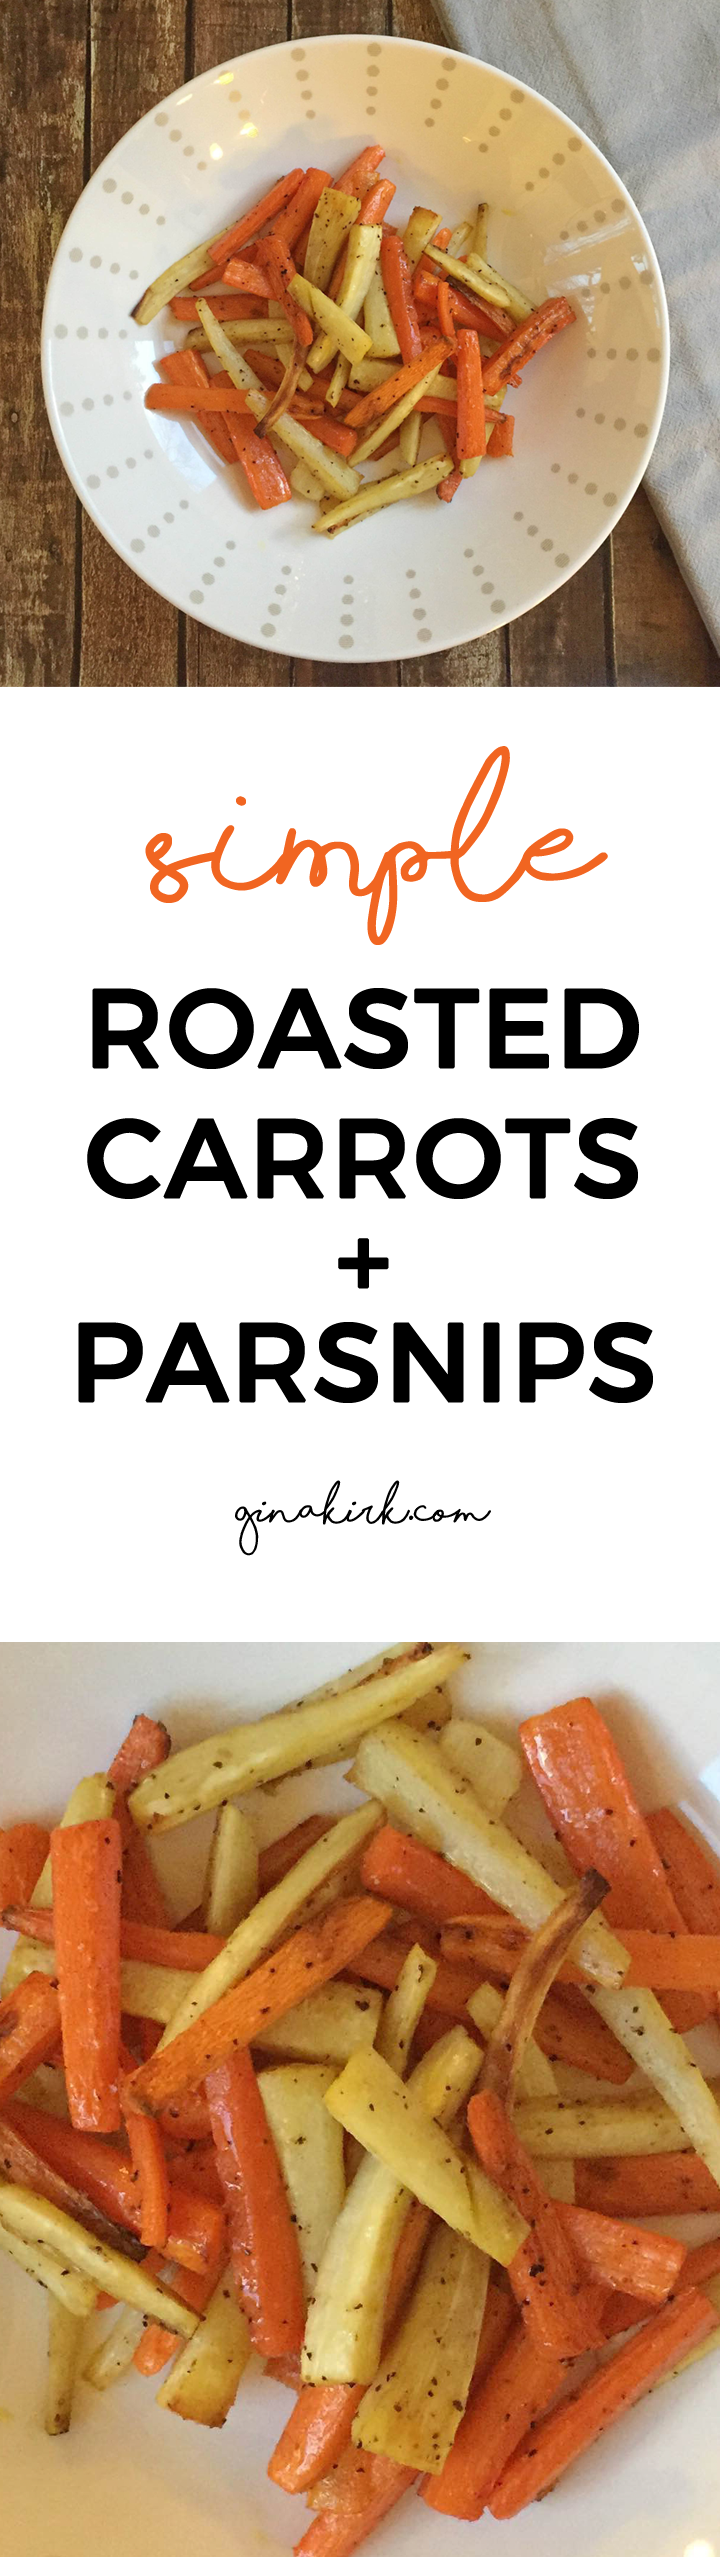 Simple roasted carrots and parsnips @ginaekirk GinaKirk.com